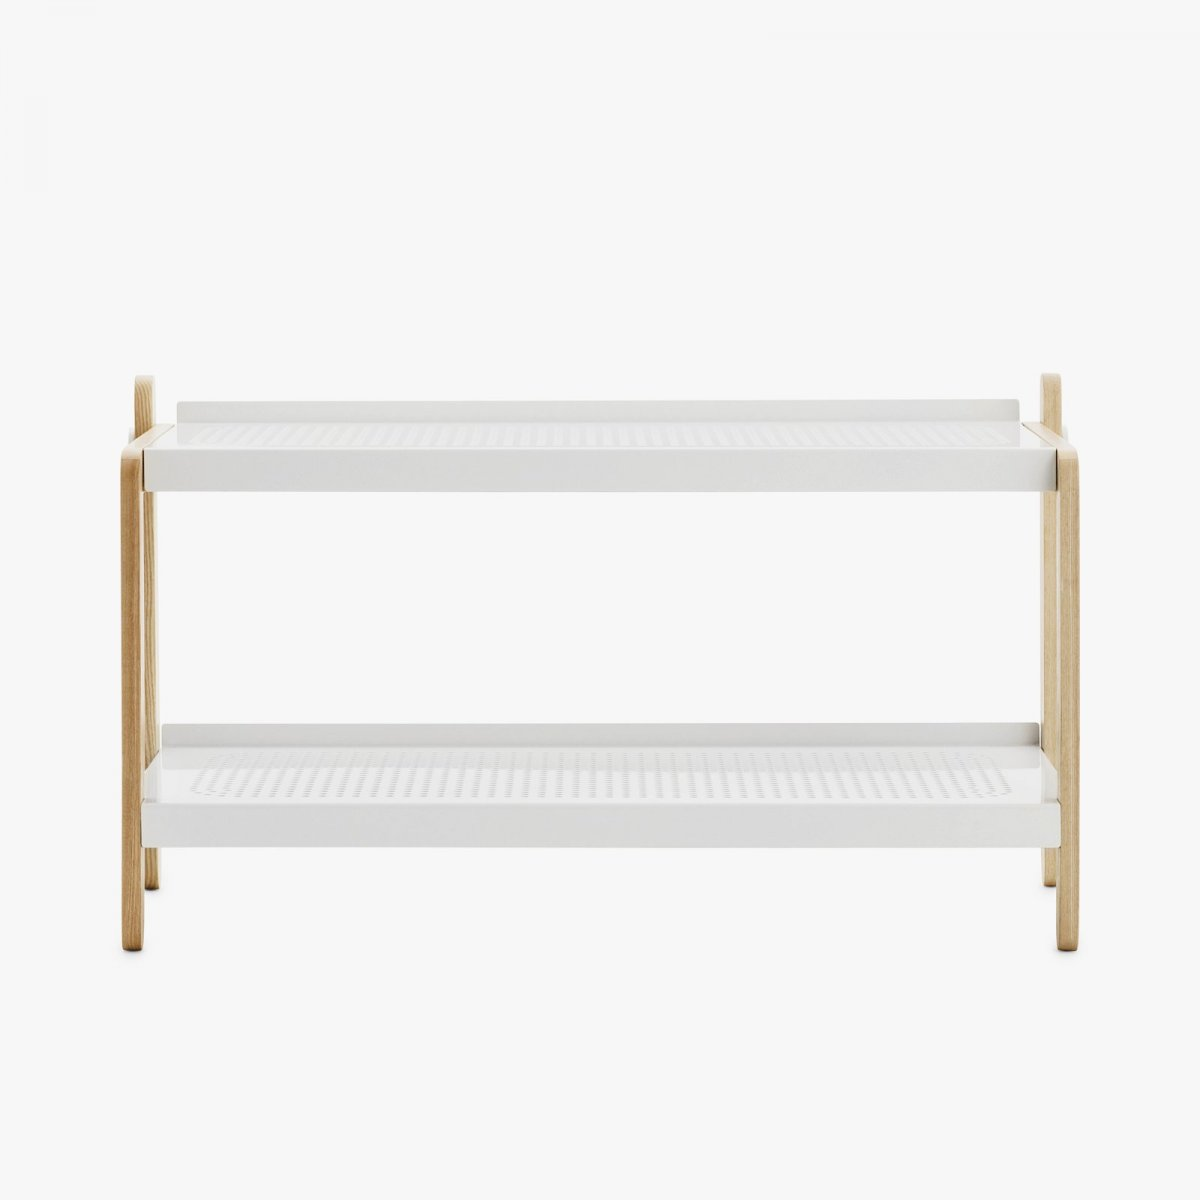 Sko Shoe Rack in white, front view.